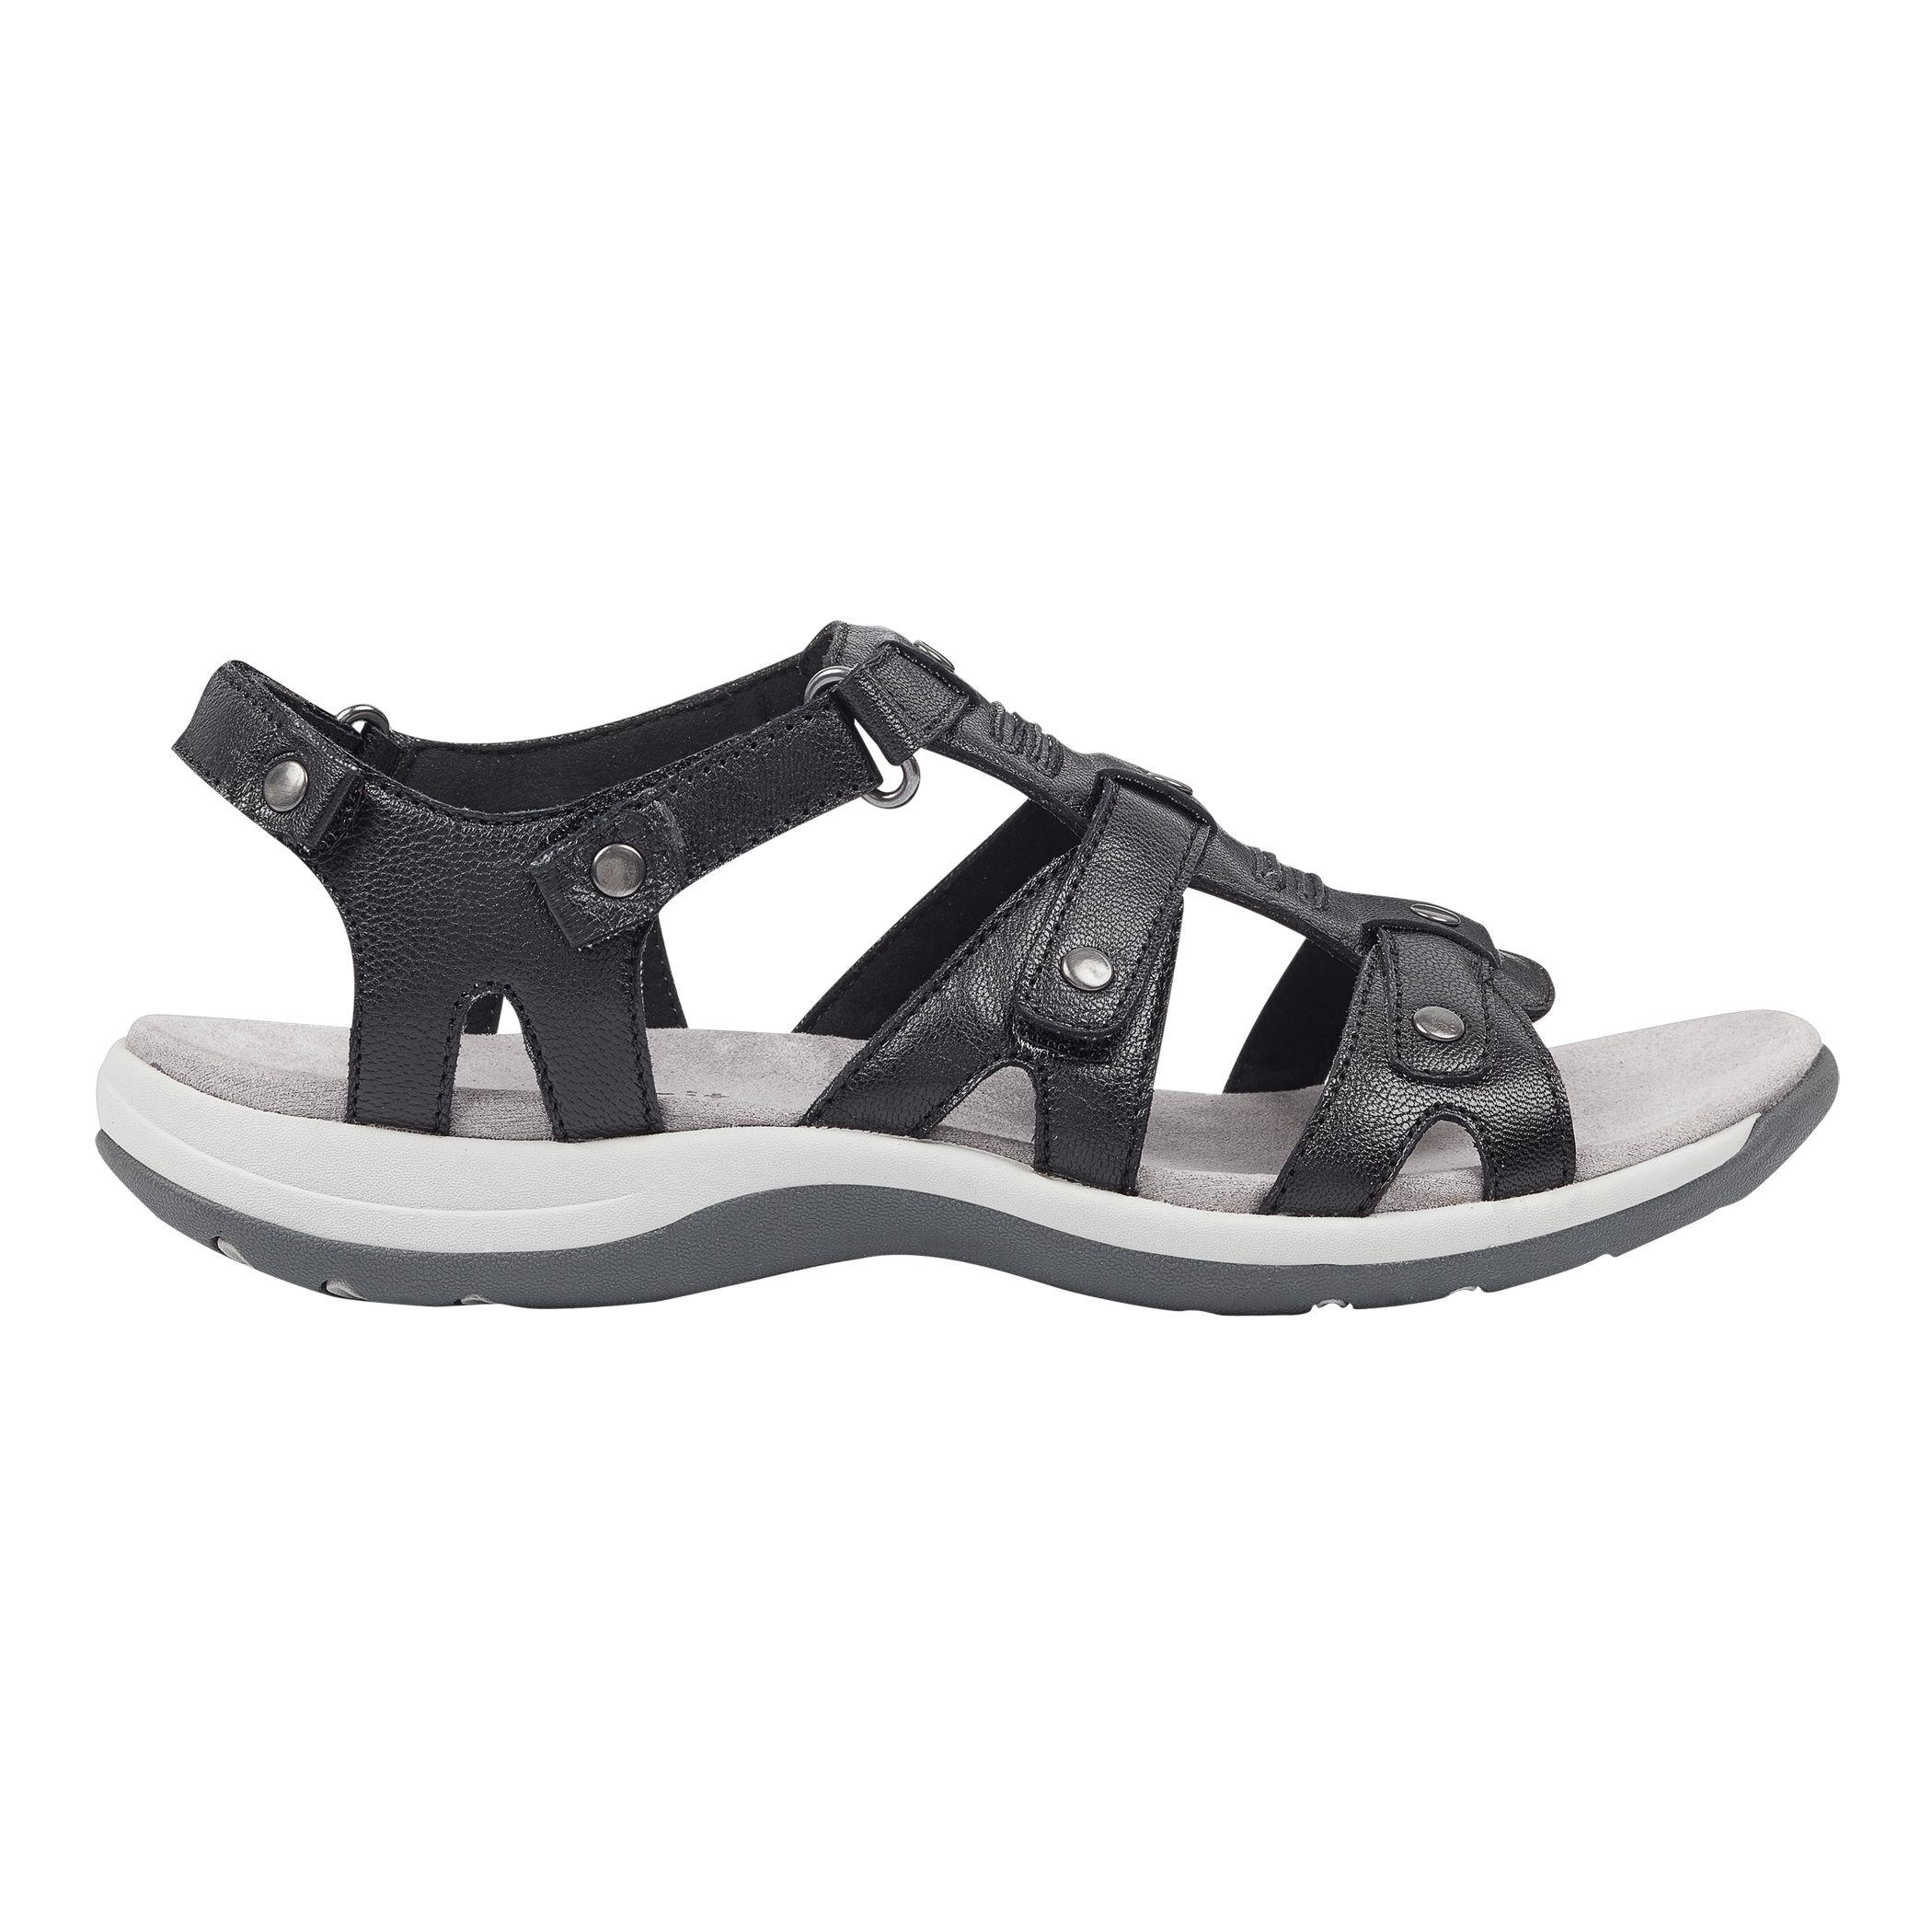 Lyst - Easy Spirit Sailors Flat Sandals in Black - Save 41% 5a0bb3bcfe6